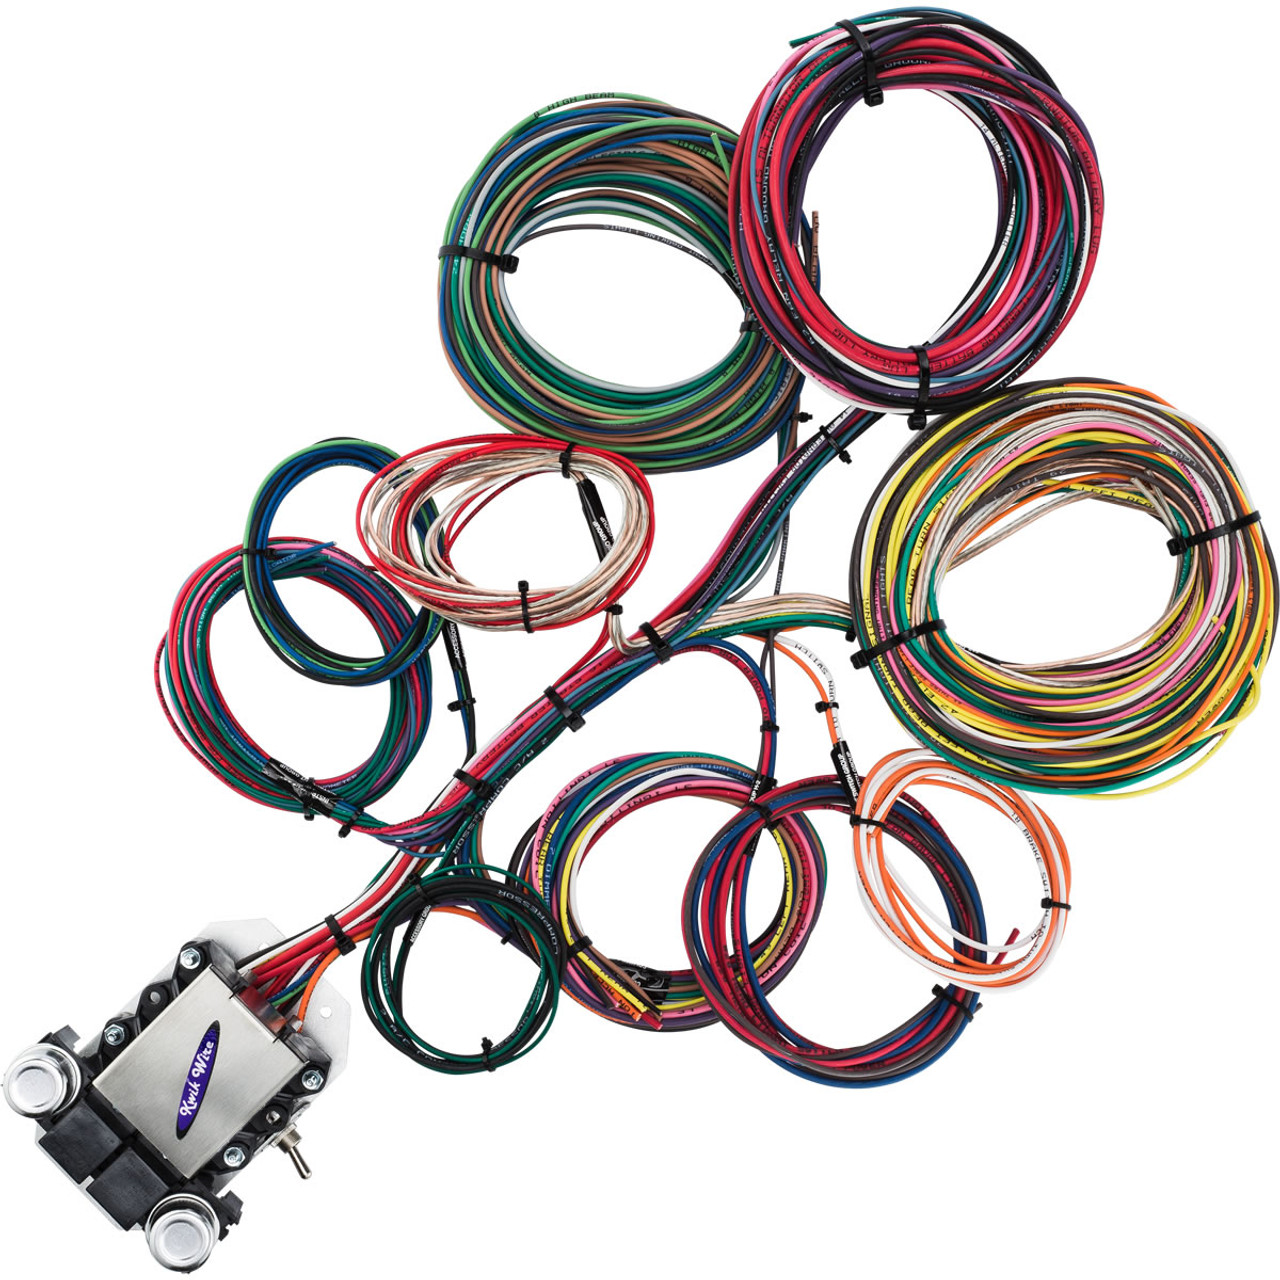 Universal Chevy Ford Dodge Olds HEI Distributor Wire Harness Pigtail Connectors